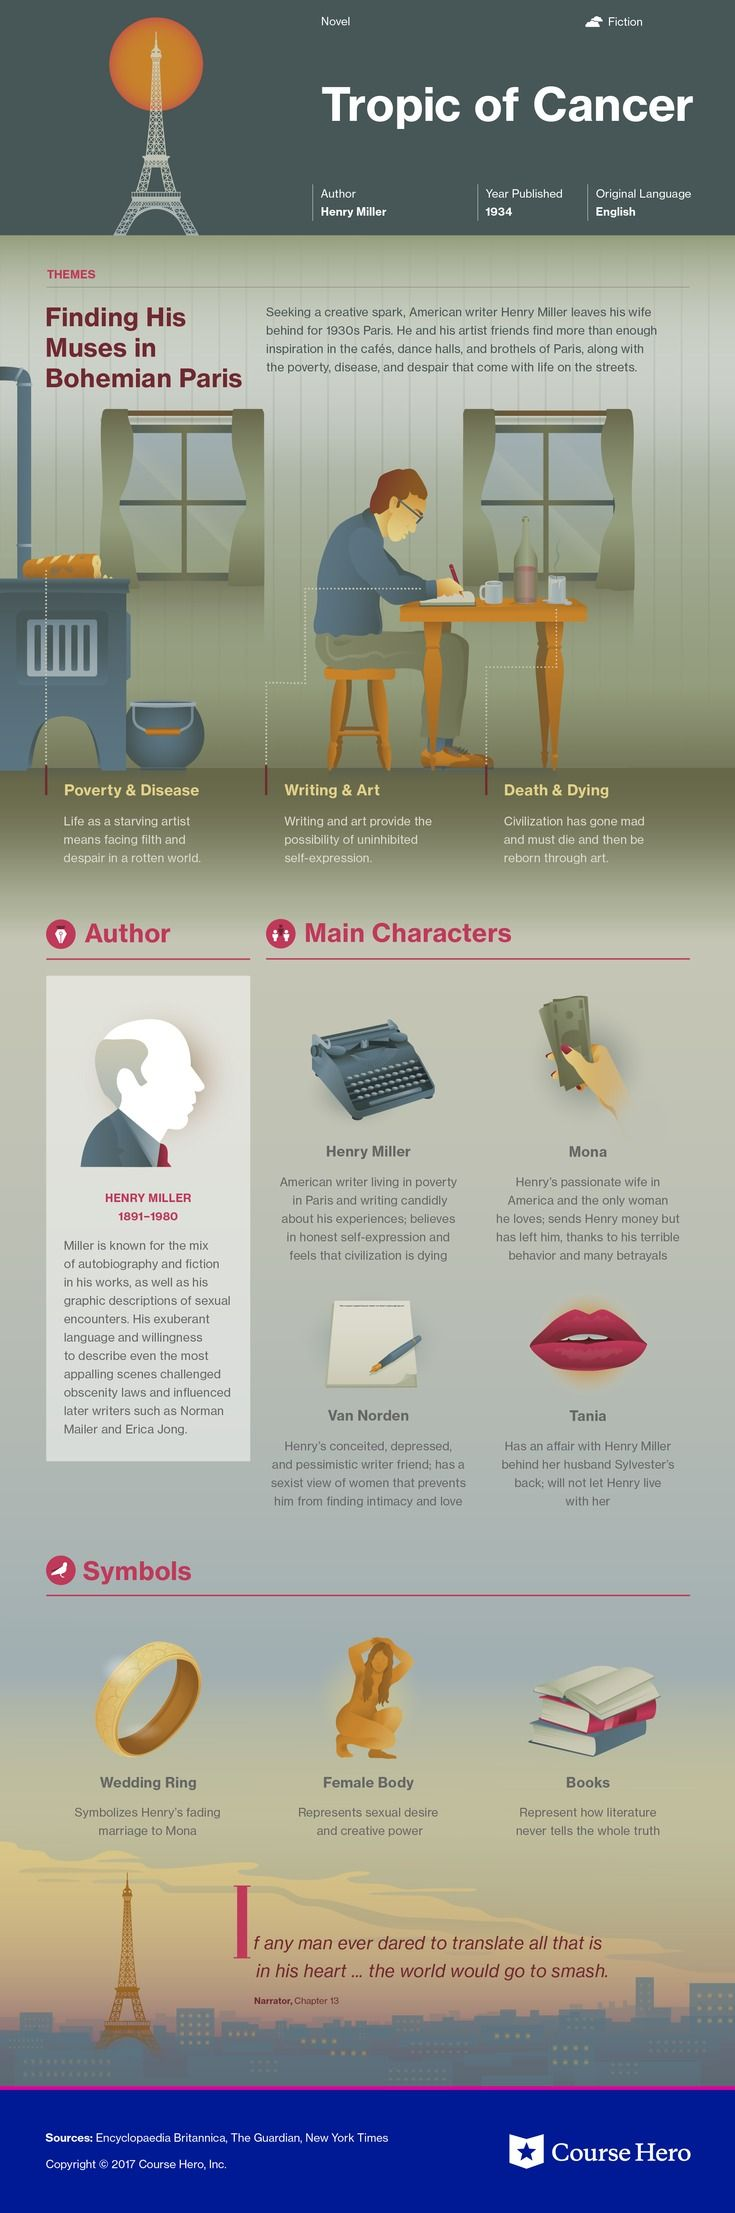 2004 best books images on pinterest infographic book this coursehero infographic on tropic of cancer is both visually stunning and informative fandeluxe Image collections